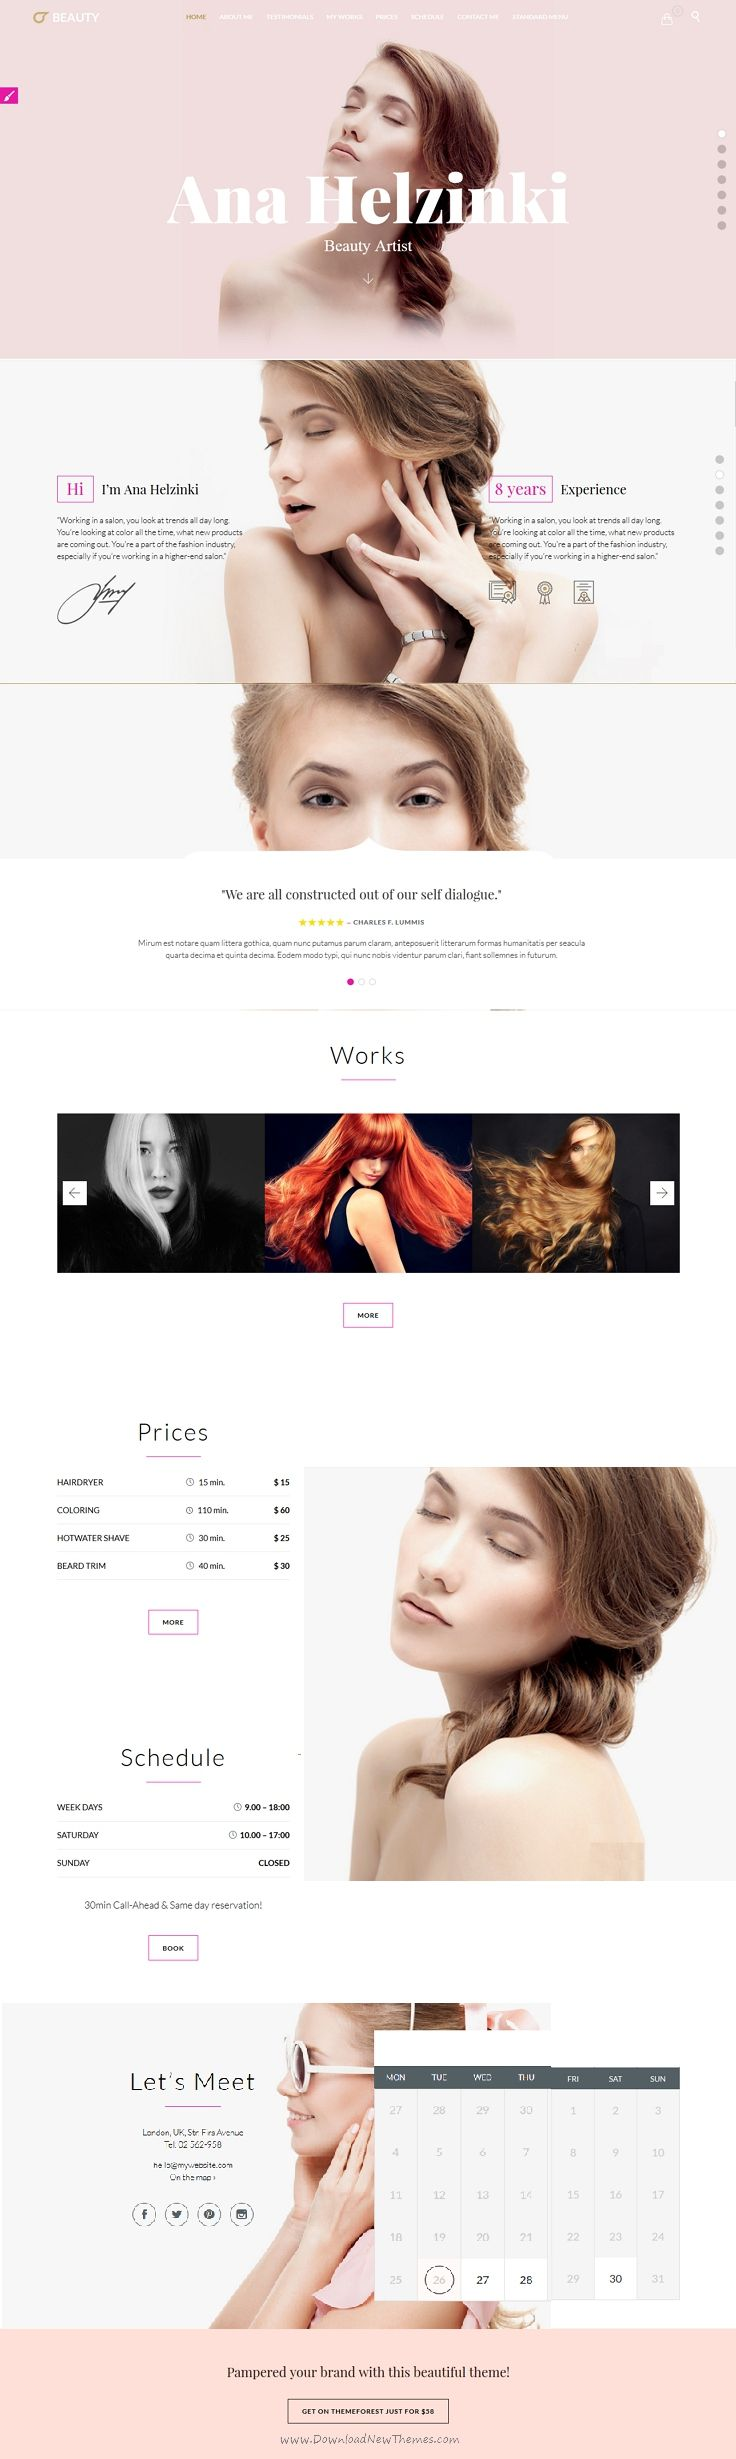 Famous 010 Editor Templates Tall 1300 Resume Government Samples Selection Criteria Rectangular 18th Birthday Invitation Templates 1st Job Resume Template Youthful 2014 Printable Calendar Template Pink24 Hour Timeline Template 25  Best Ideas About Salon Website On Pinterest | Website Design ..